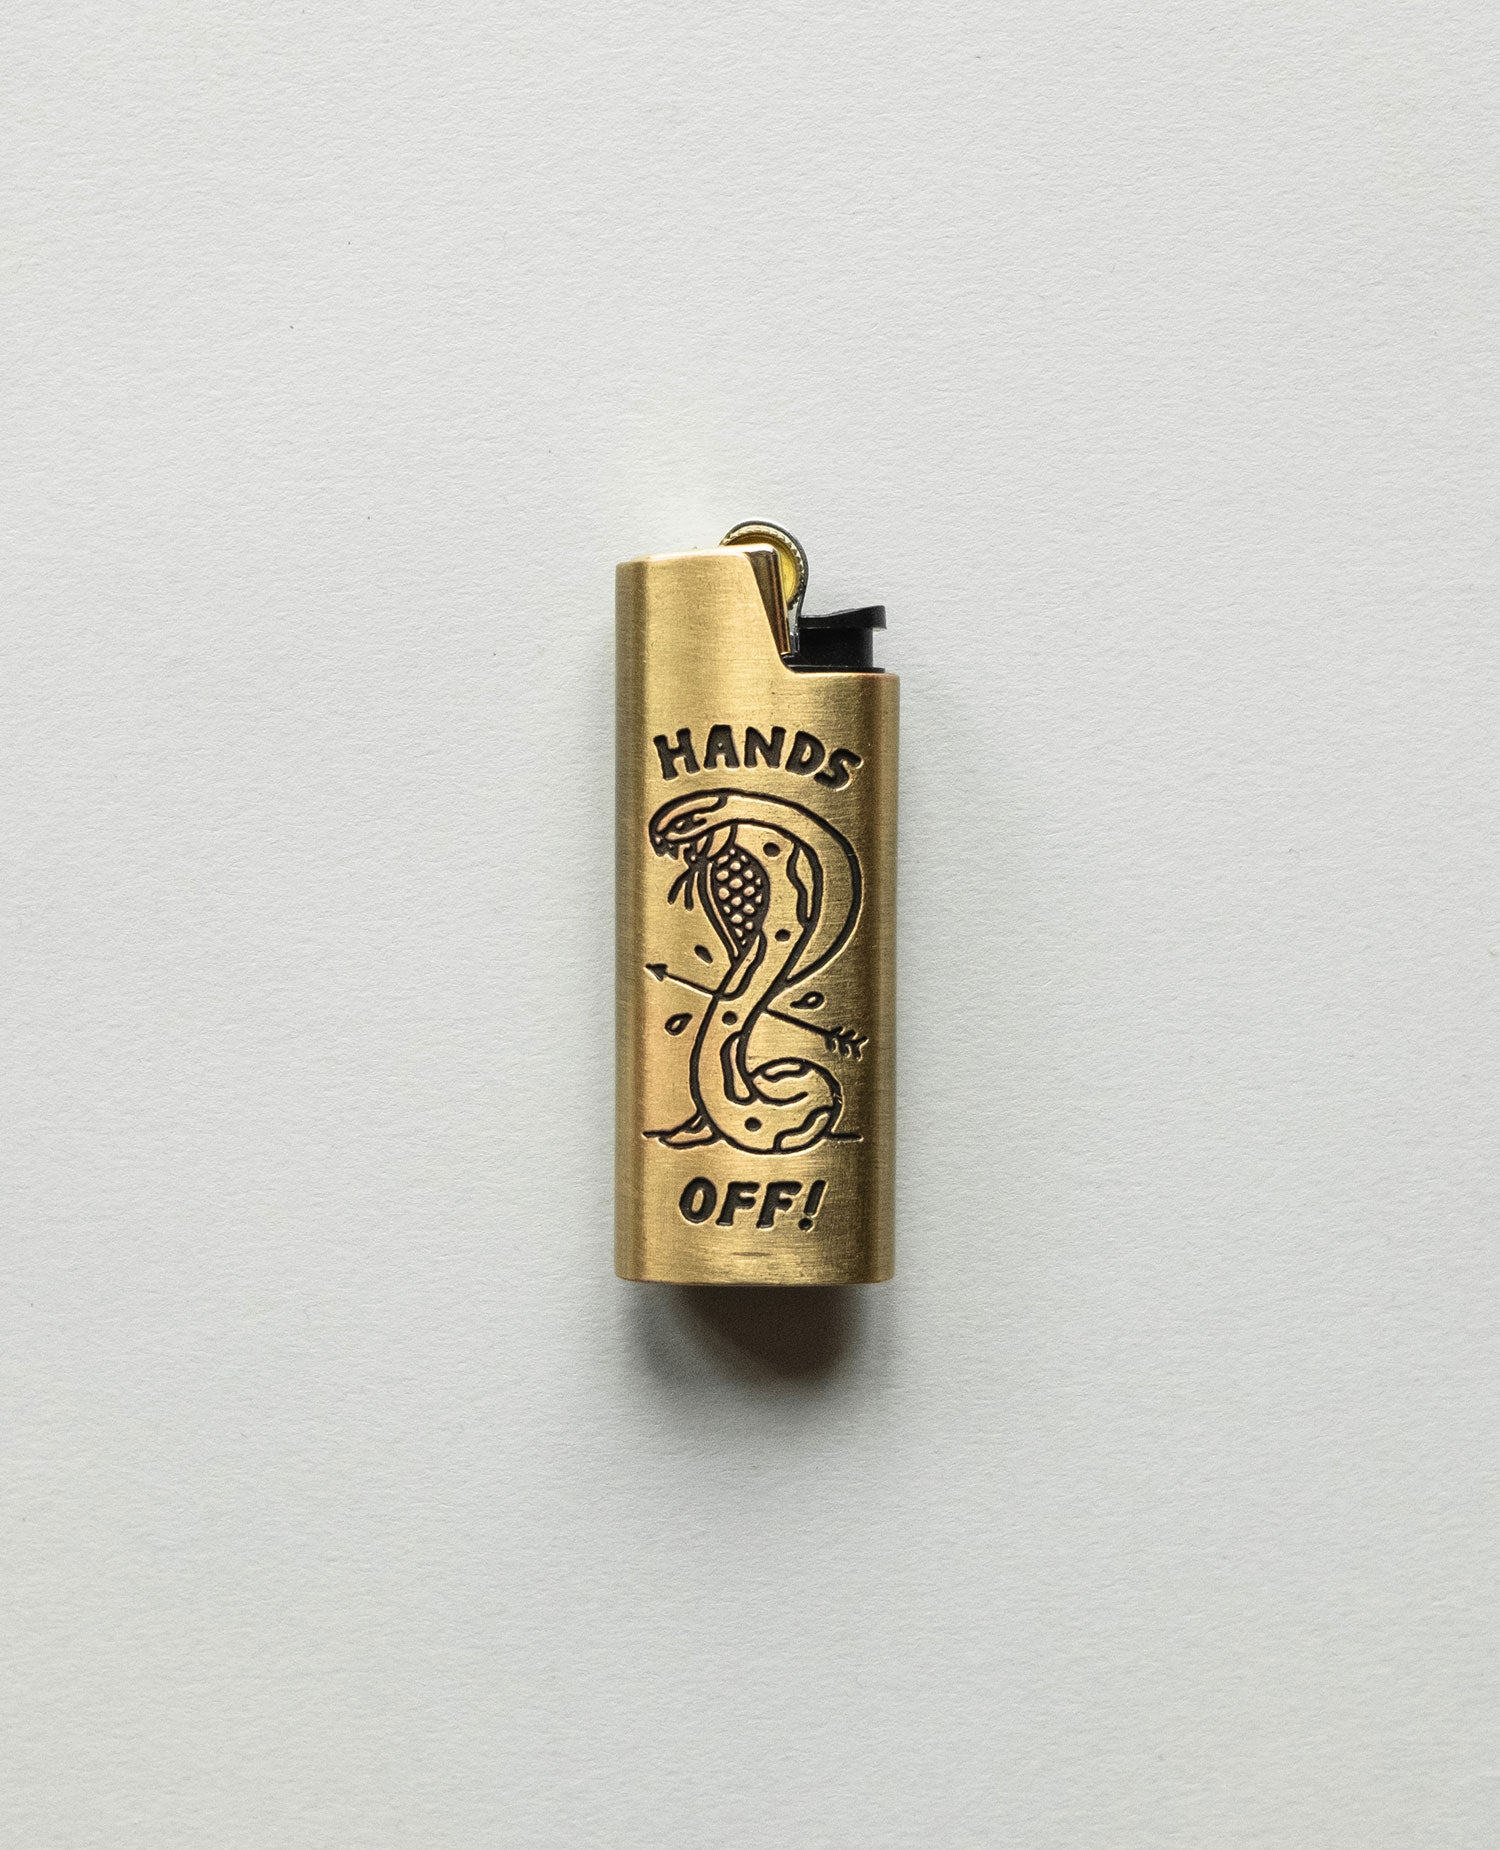 Hands Off Lighter Case